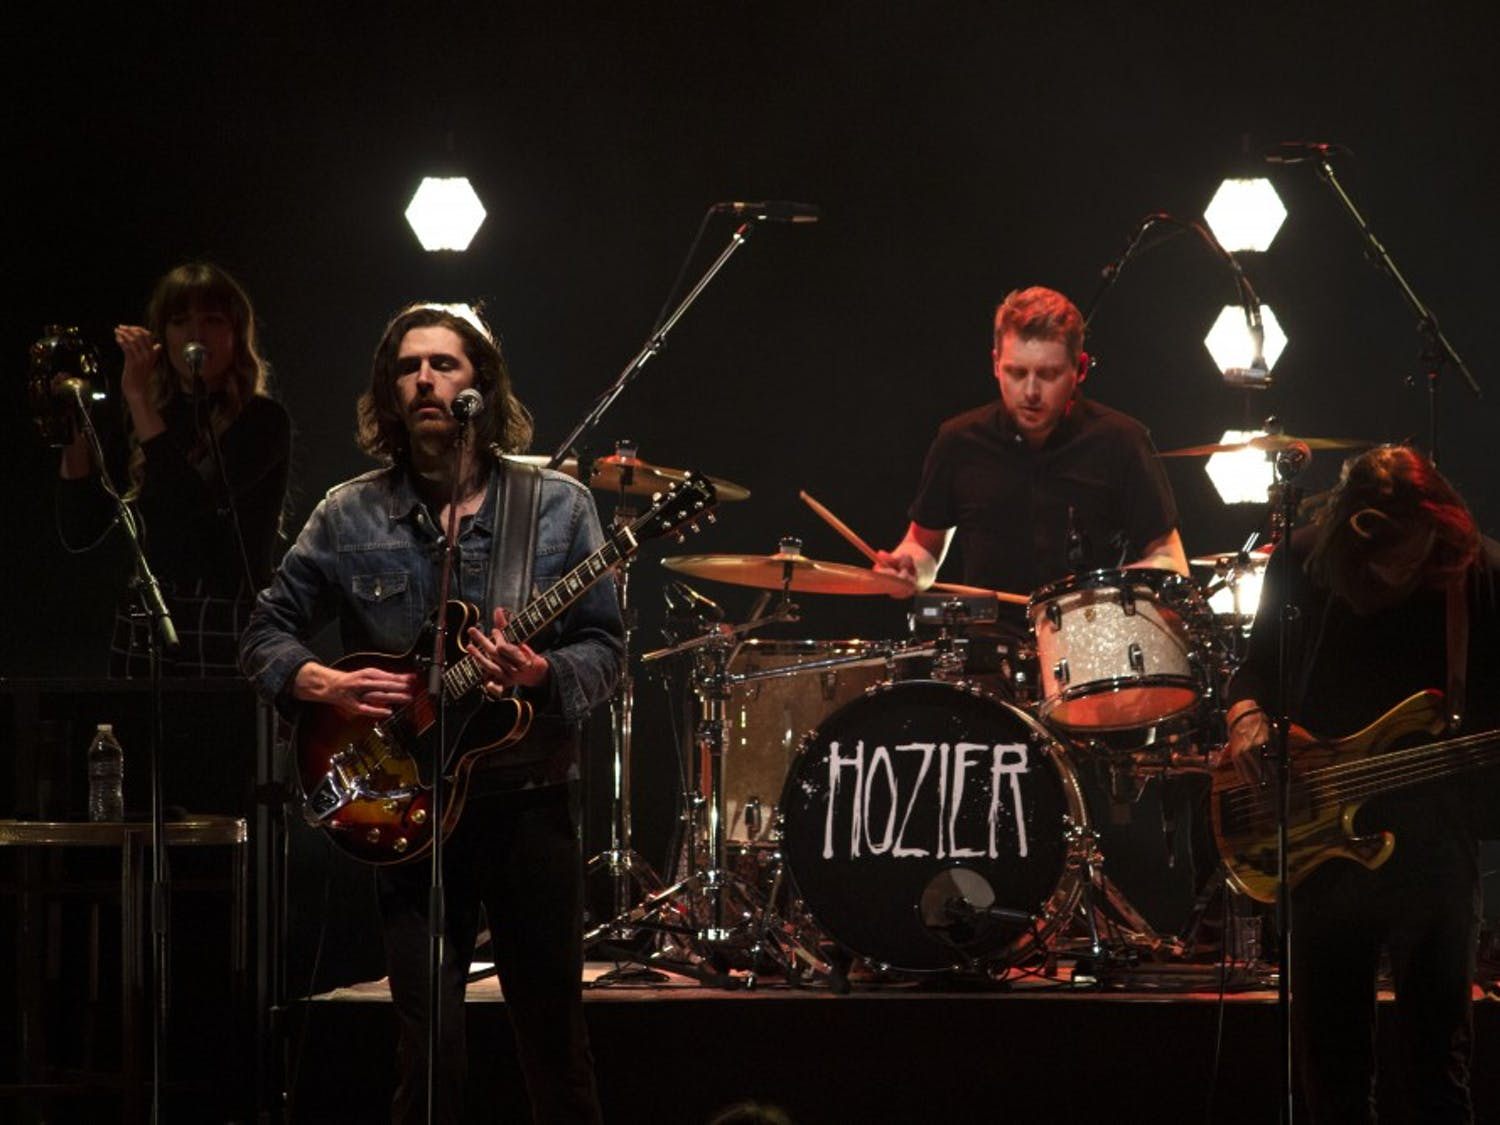 """Hozier's """"Wasteland, Baby! Tour"""" opened at Shea's on Sunday night. The tour is in support of the Irish singer's newest album of the same name."""